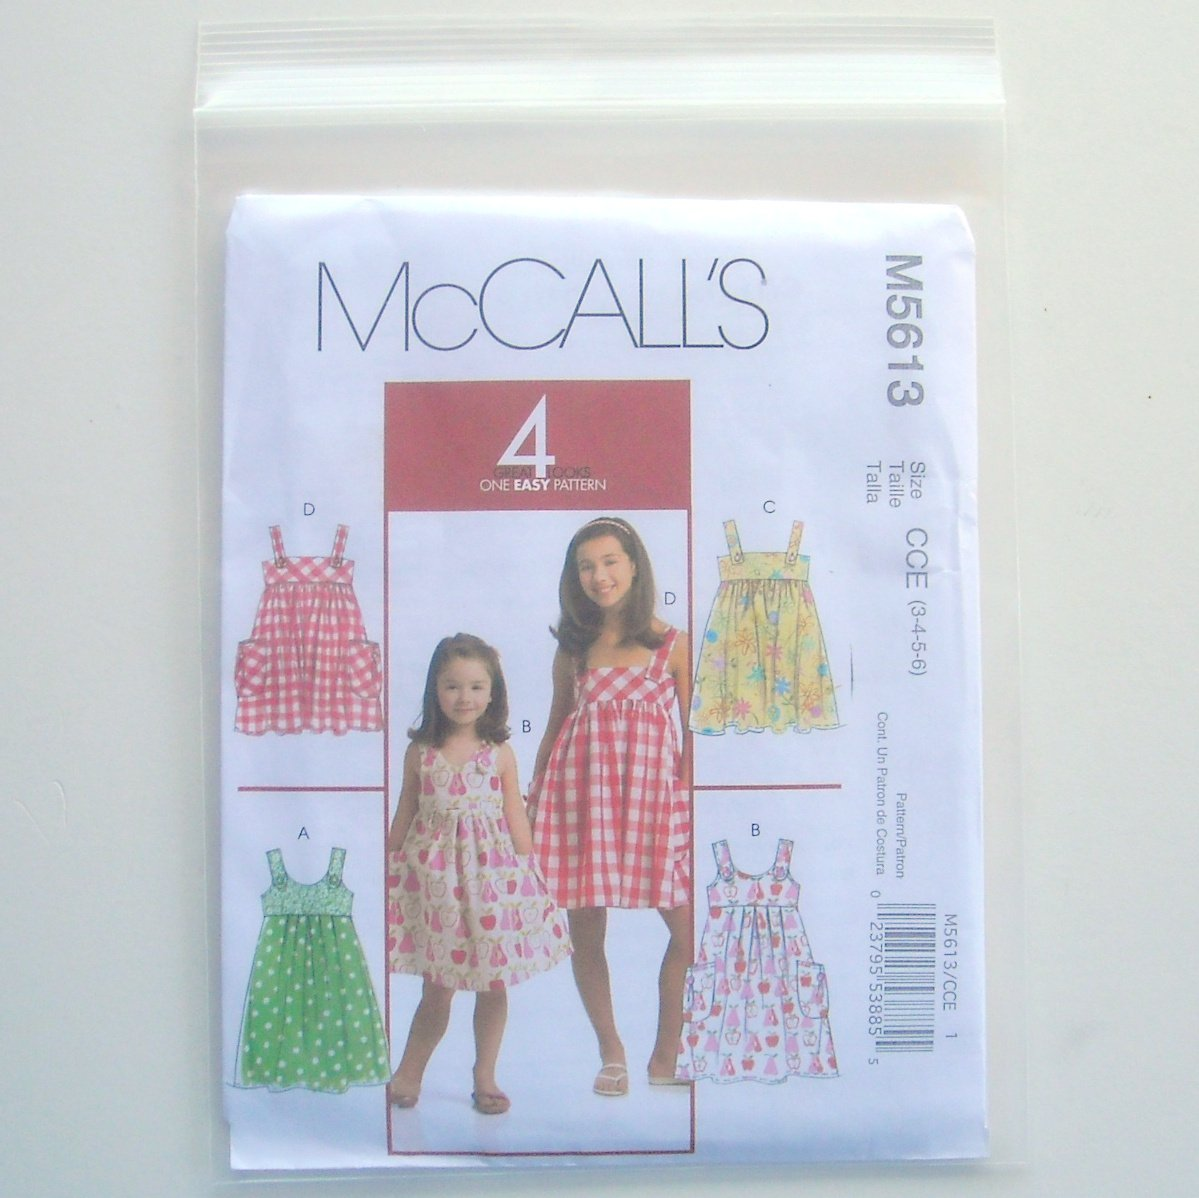 Childrens Girls Dresses 4 Great Looks McCalls Sewing Pattern M5613